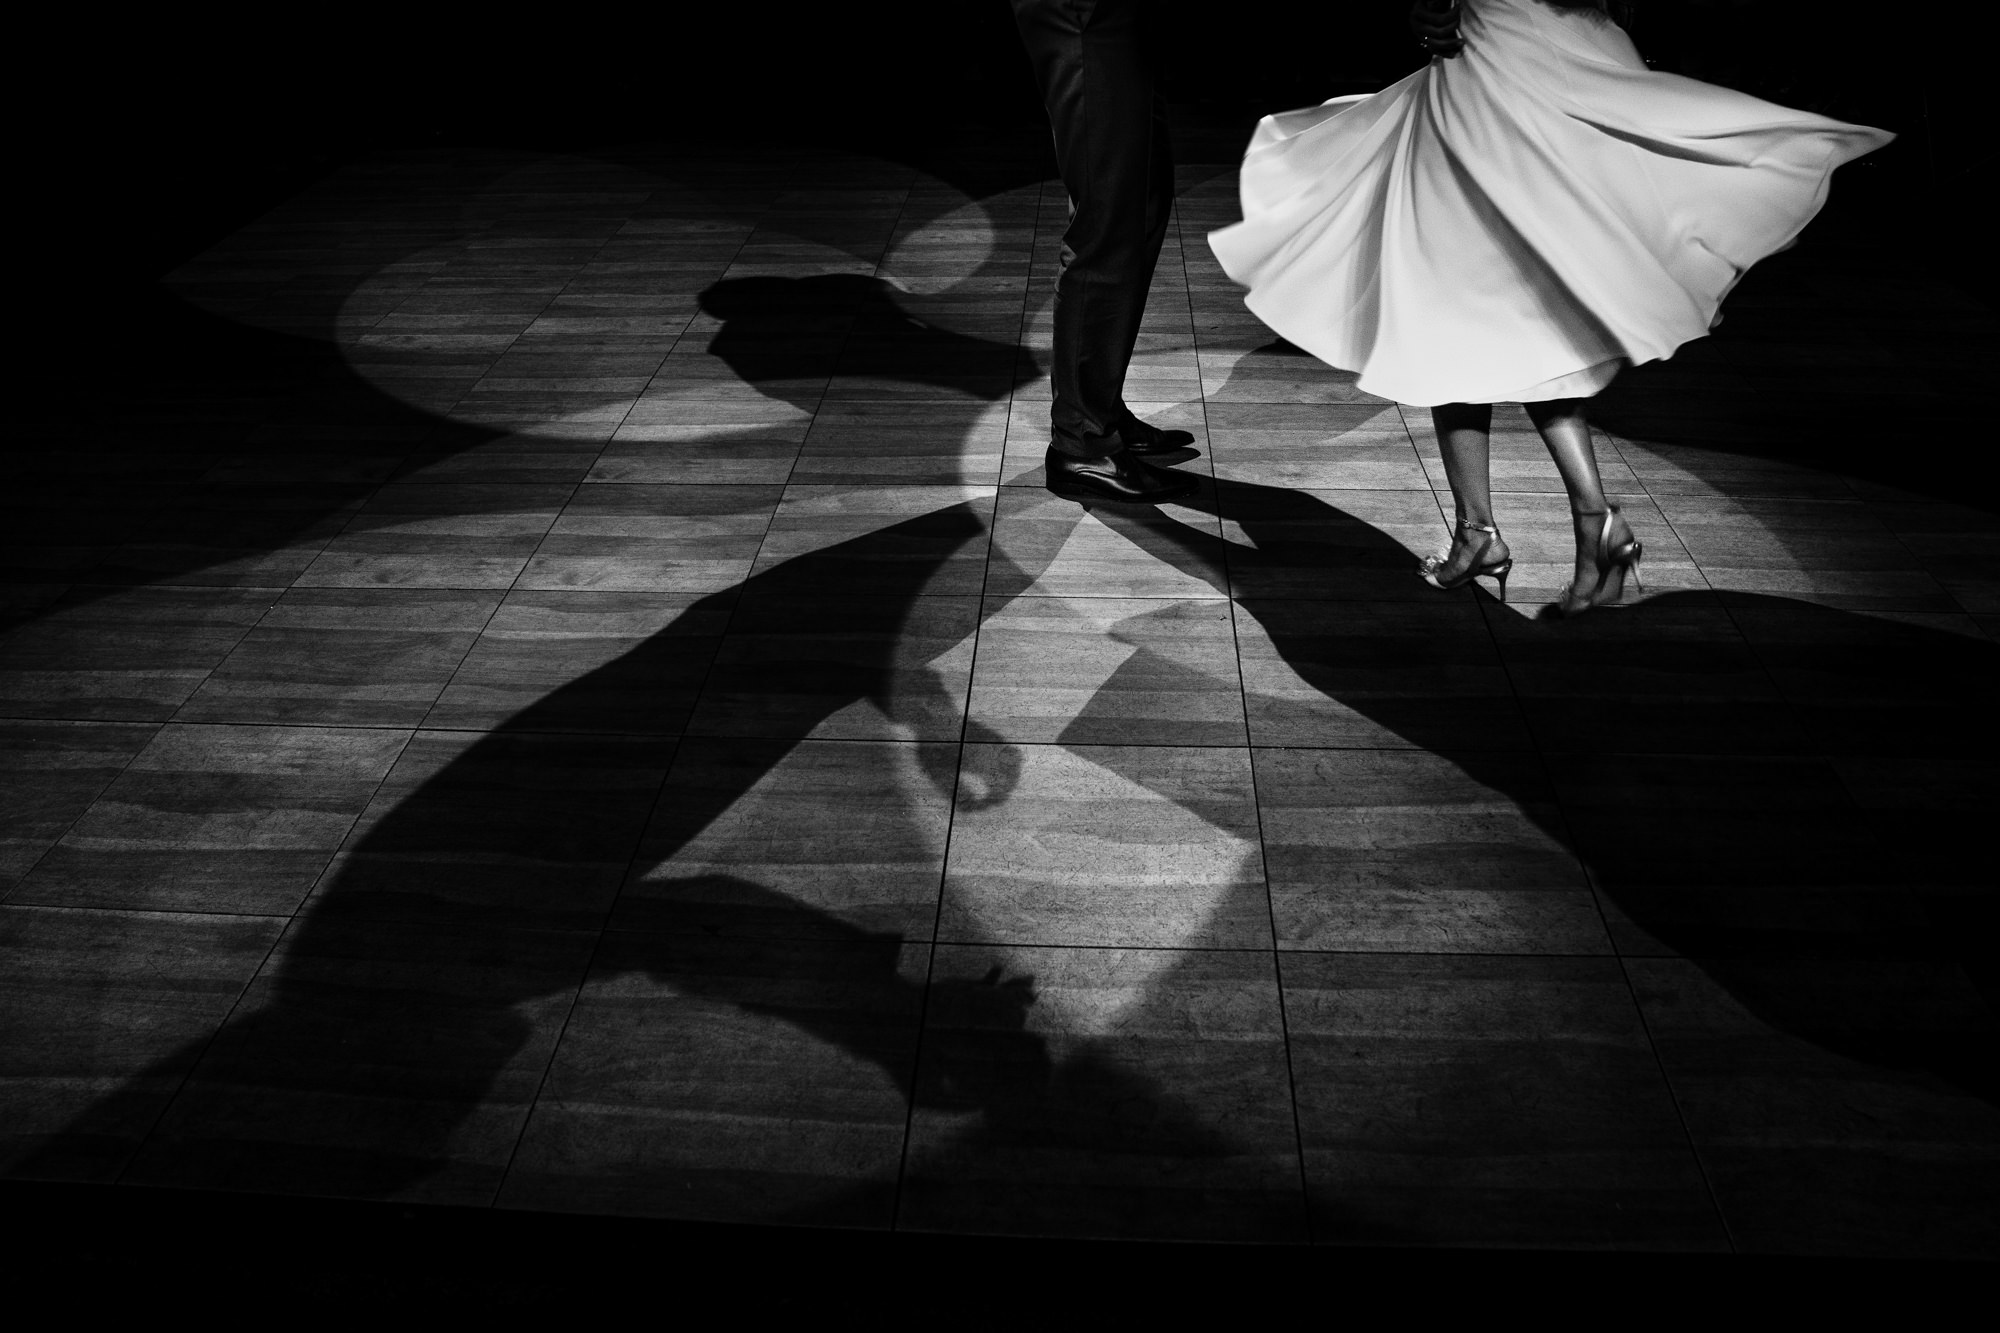 Dress swirling during fist dance photo by Yves Schepers